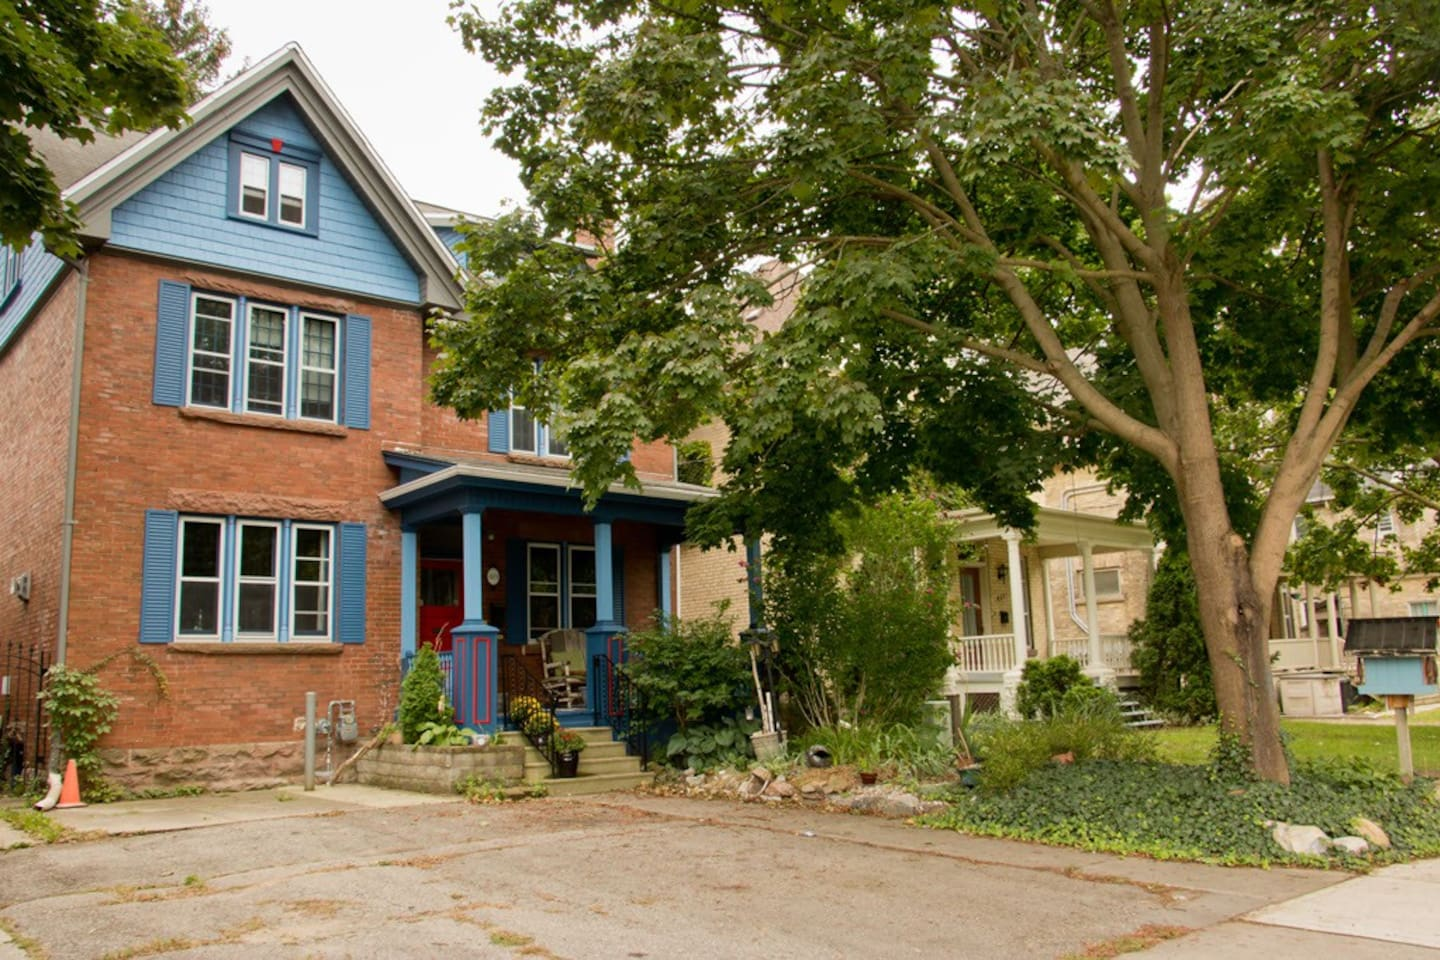 Victorian House in the Woodfield neighbourhood, London Ontario